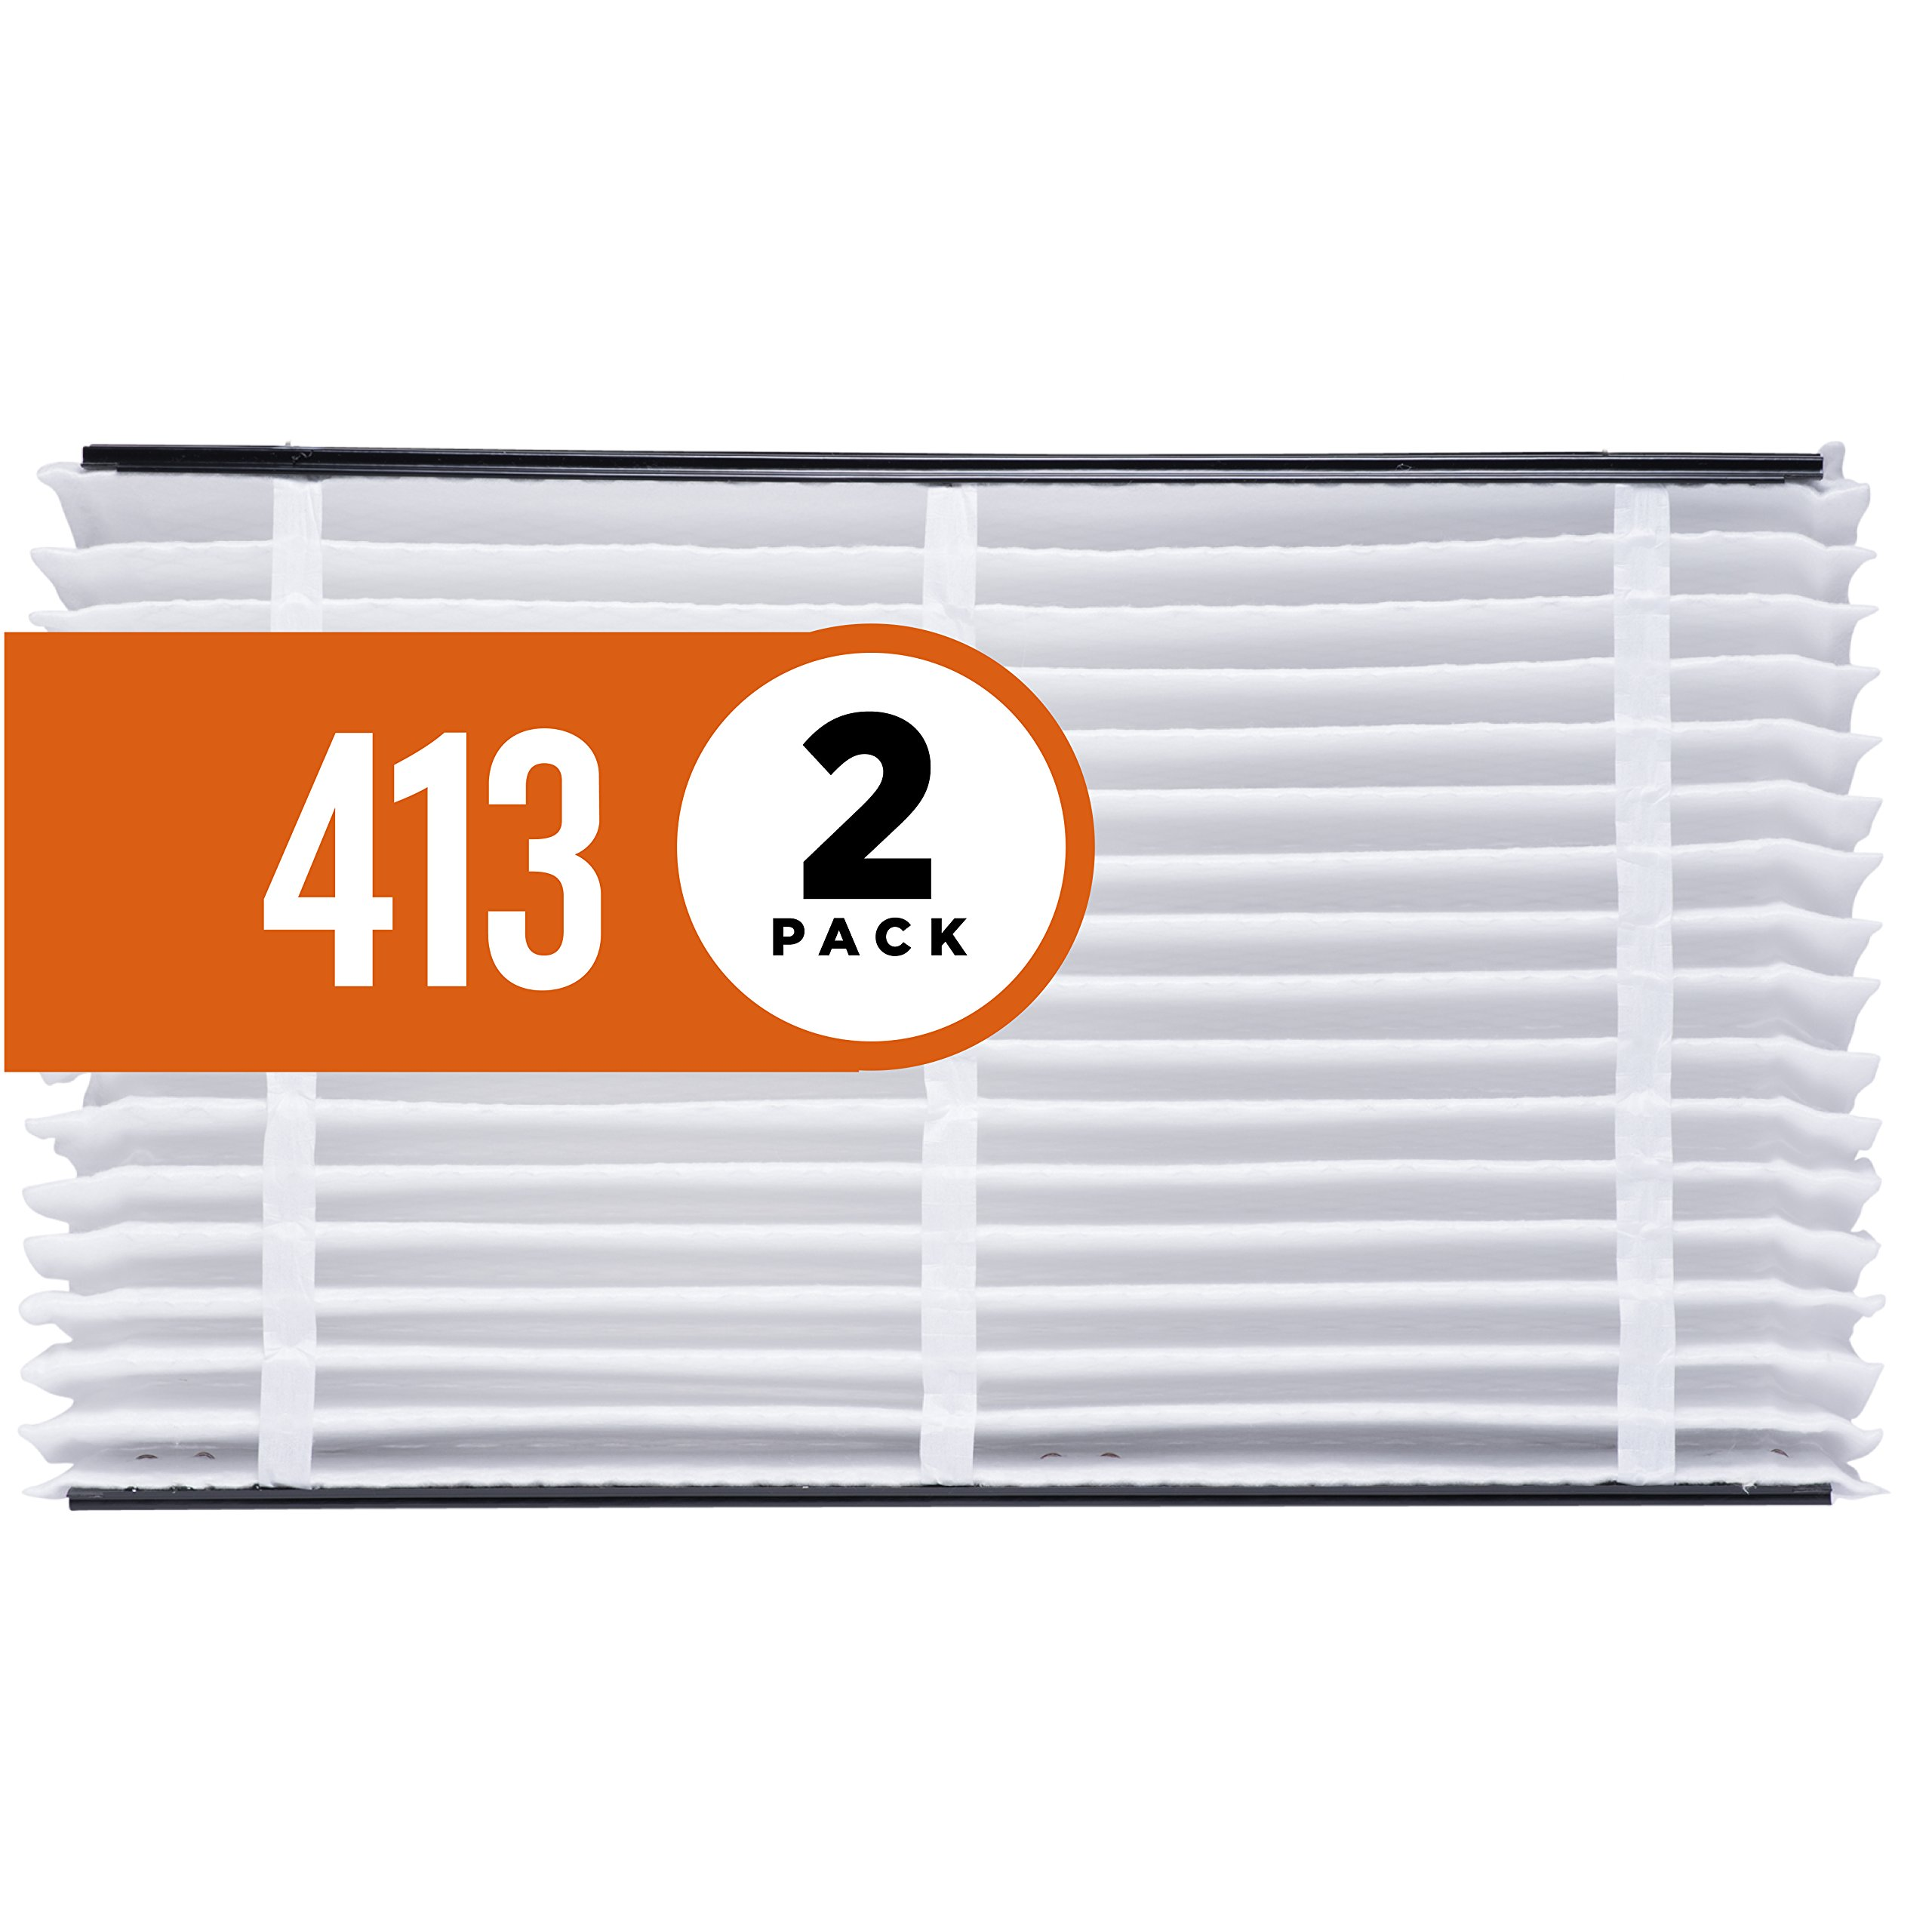 Aprilaire 413 Air Filter for Aprilaire Whole Home Air Purifiers, MERV 13 (Pack of 2)